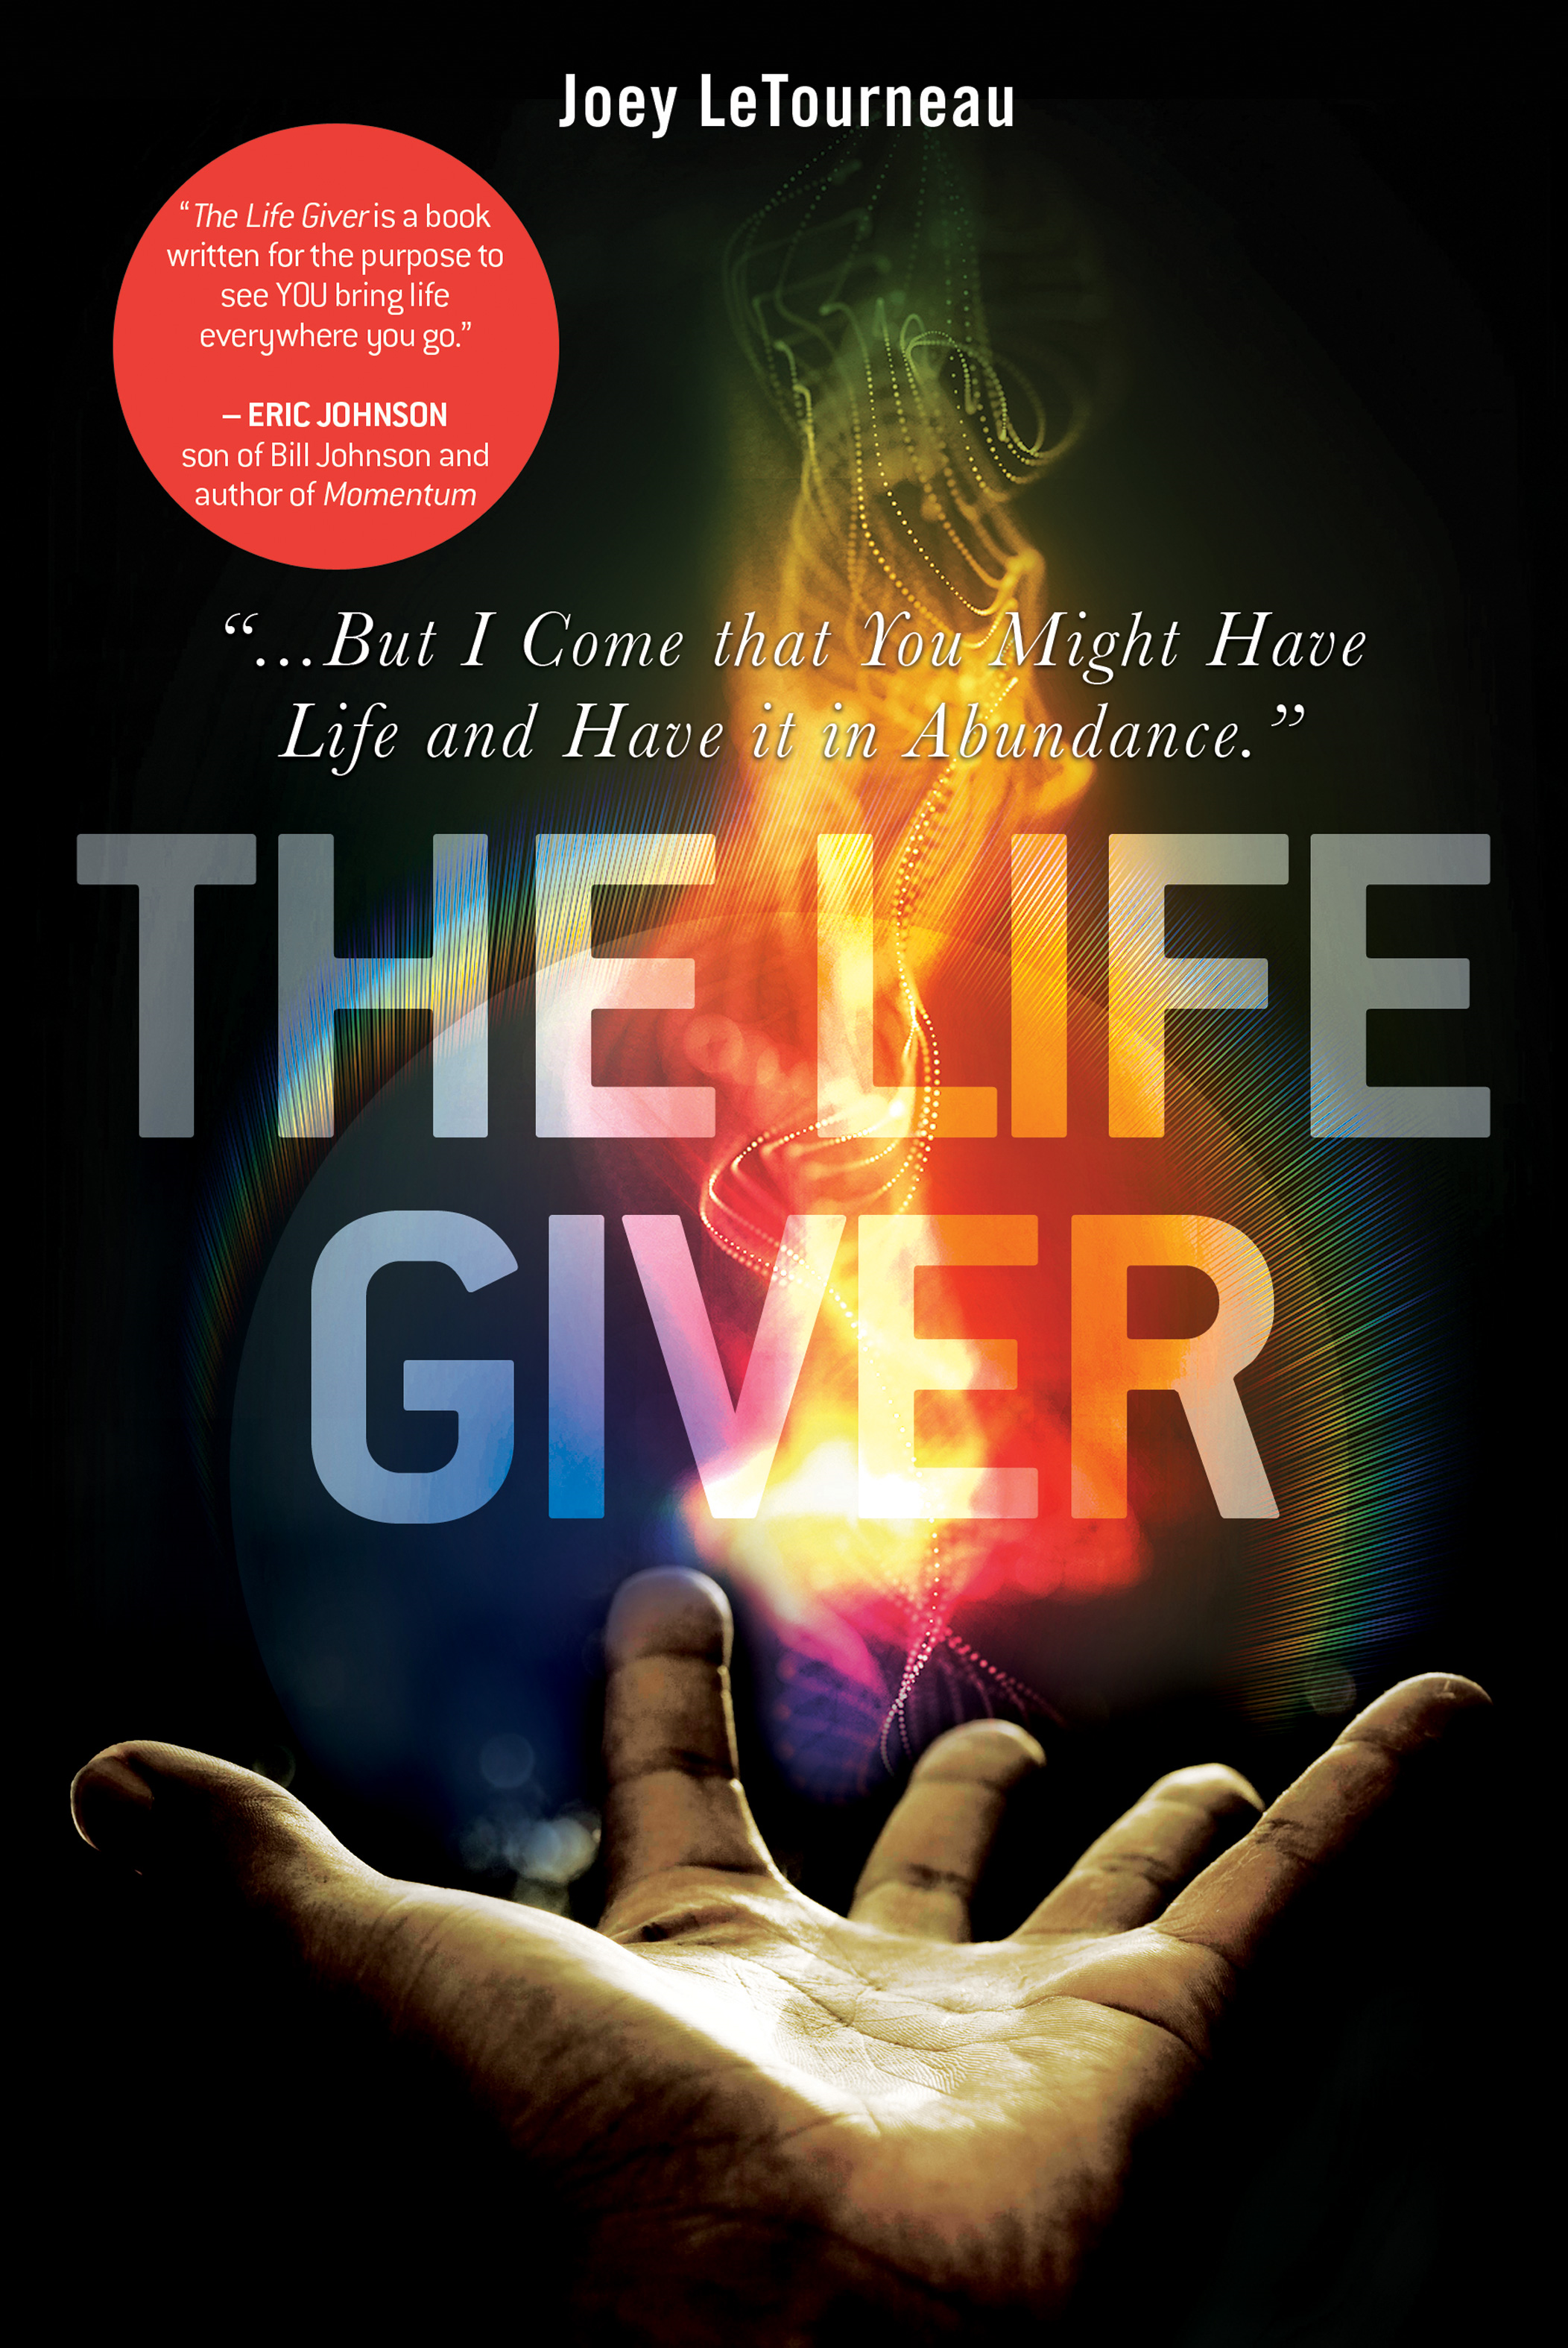 "The Life Giver: ""...But I Come that You Might Have Life and Have it in Abundance."" John 10:10 By: Joey LeTourneau"